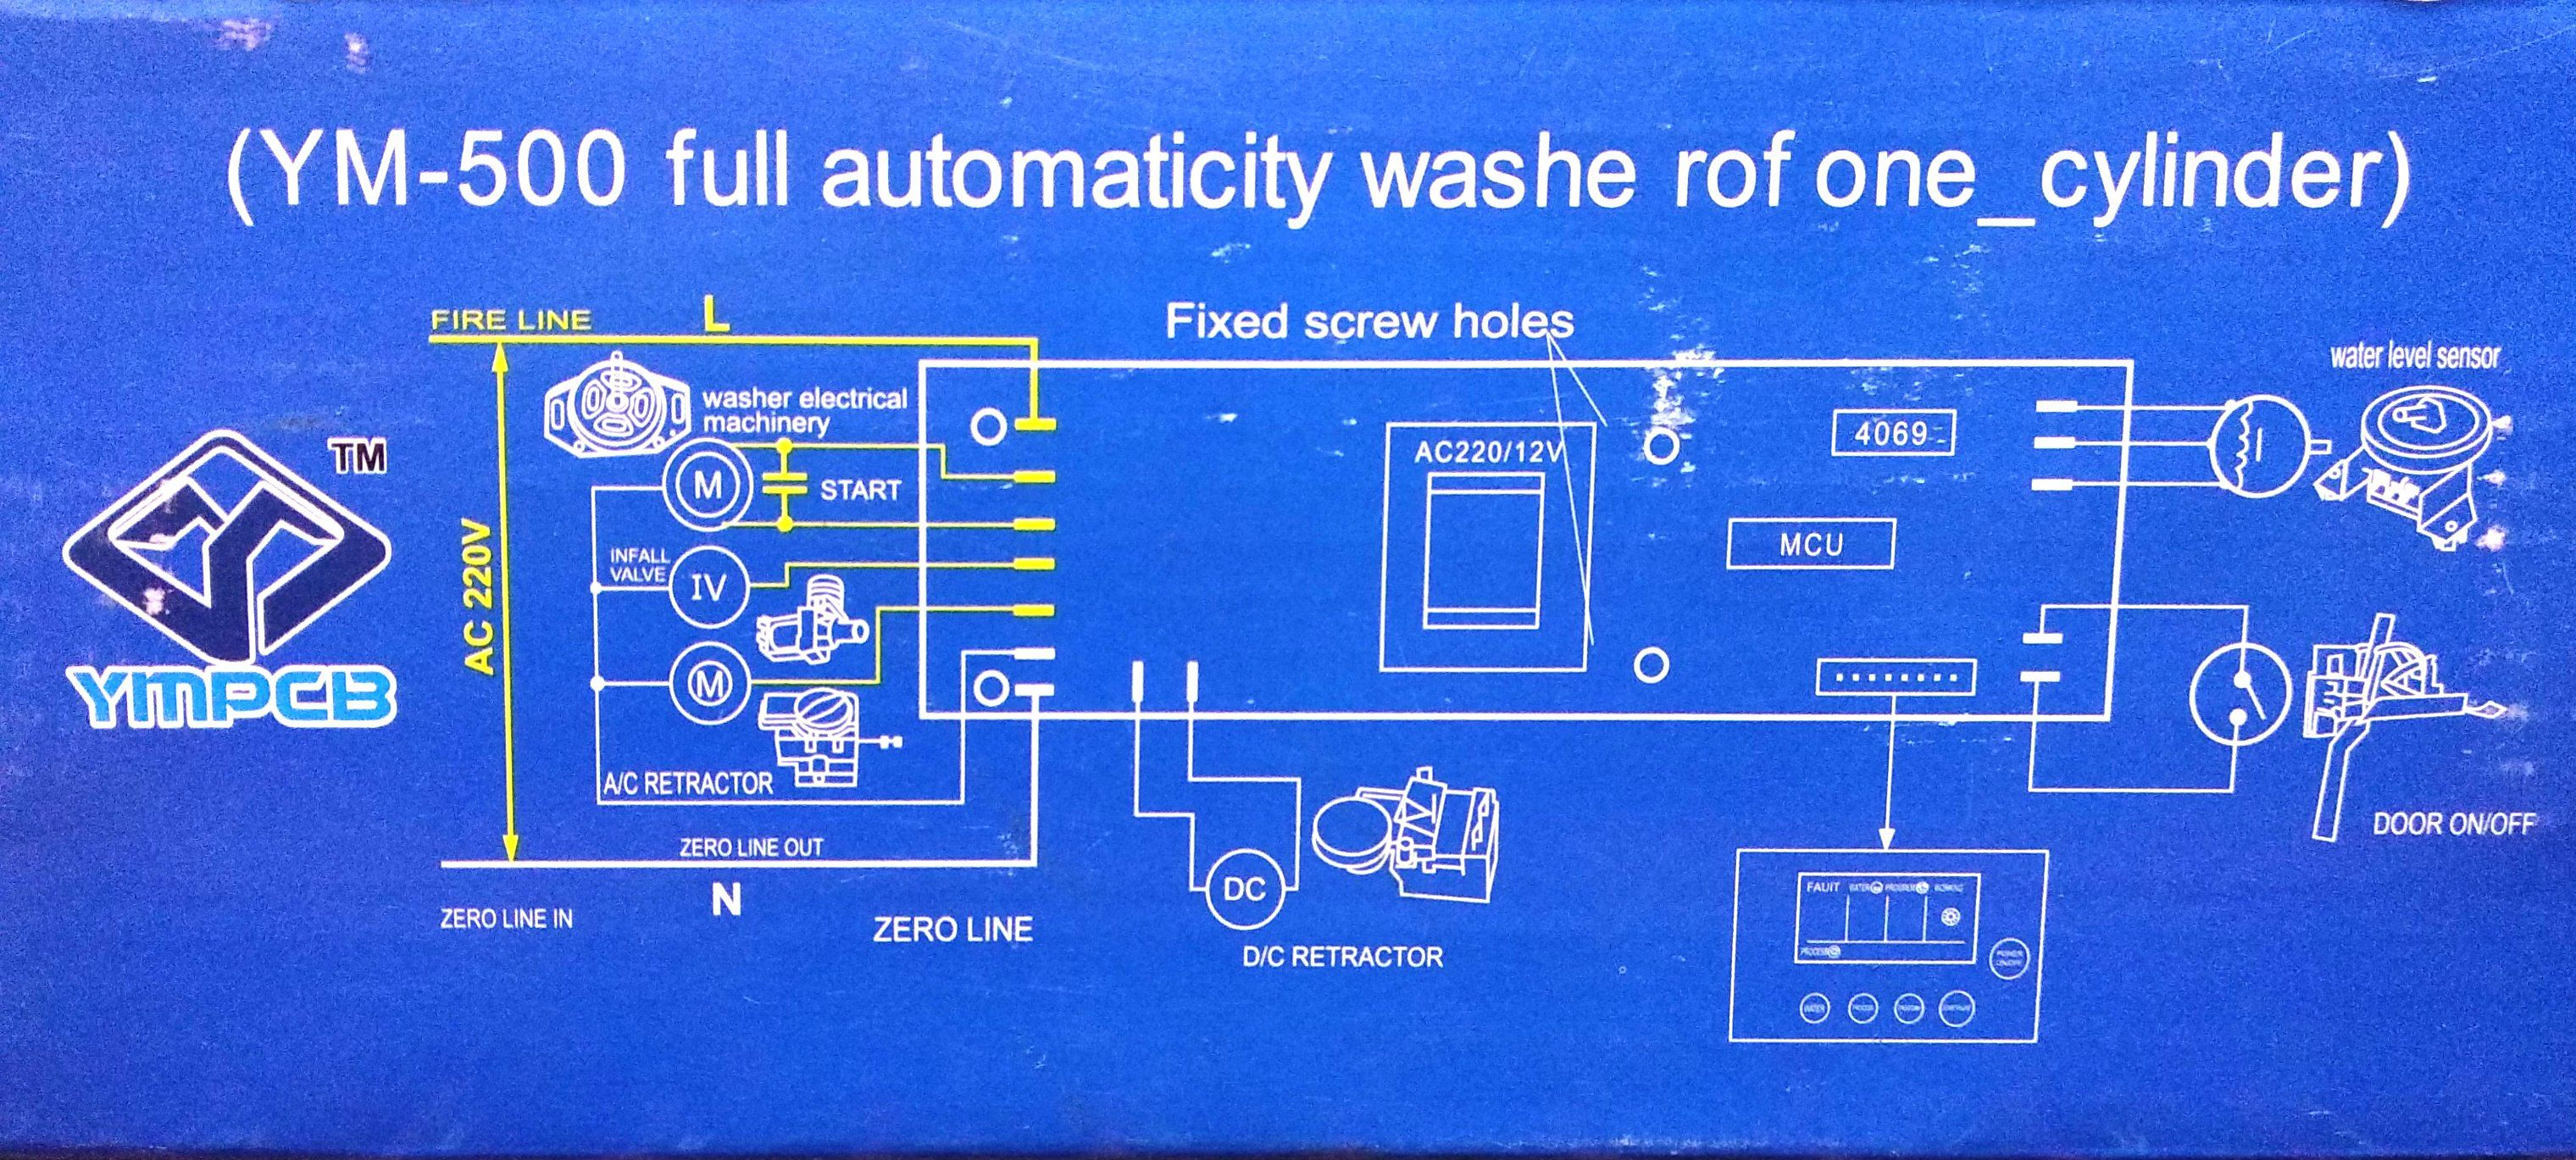 Washing Machine - Universal Main-board PCB for Fully Automatic Top Load  washing Machines - YM-500